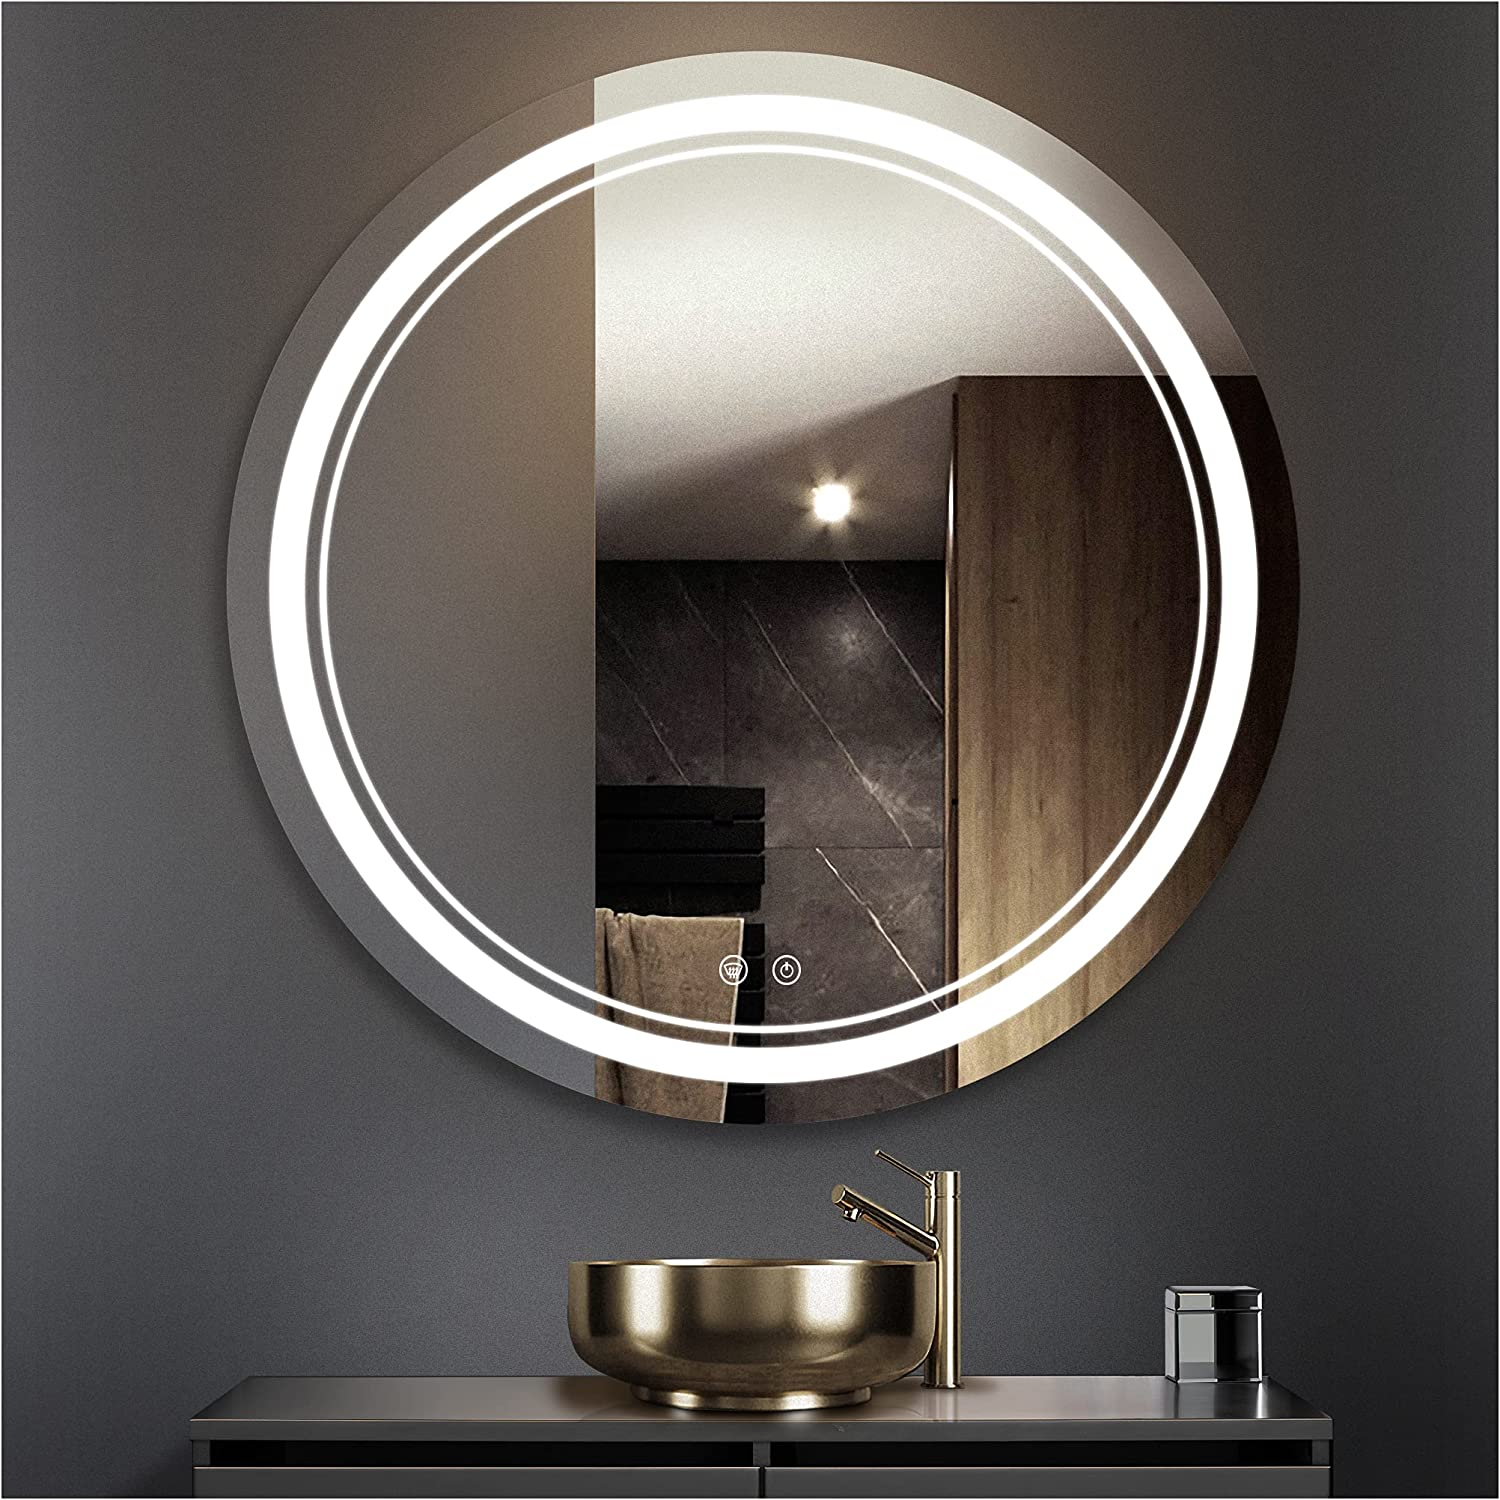 TETOTE Popular shop is the lowest price challenge 36 Inch LED Bathroom Round Al sold out. Anti-Fo Dimmable Vanity Mirror